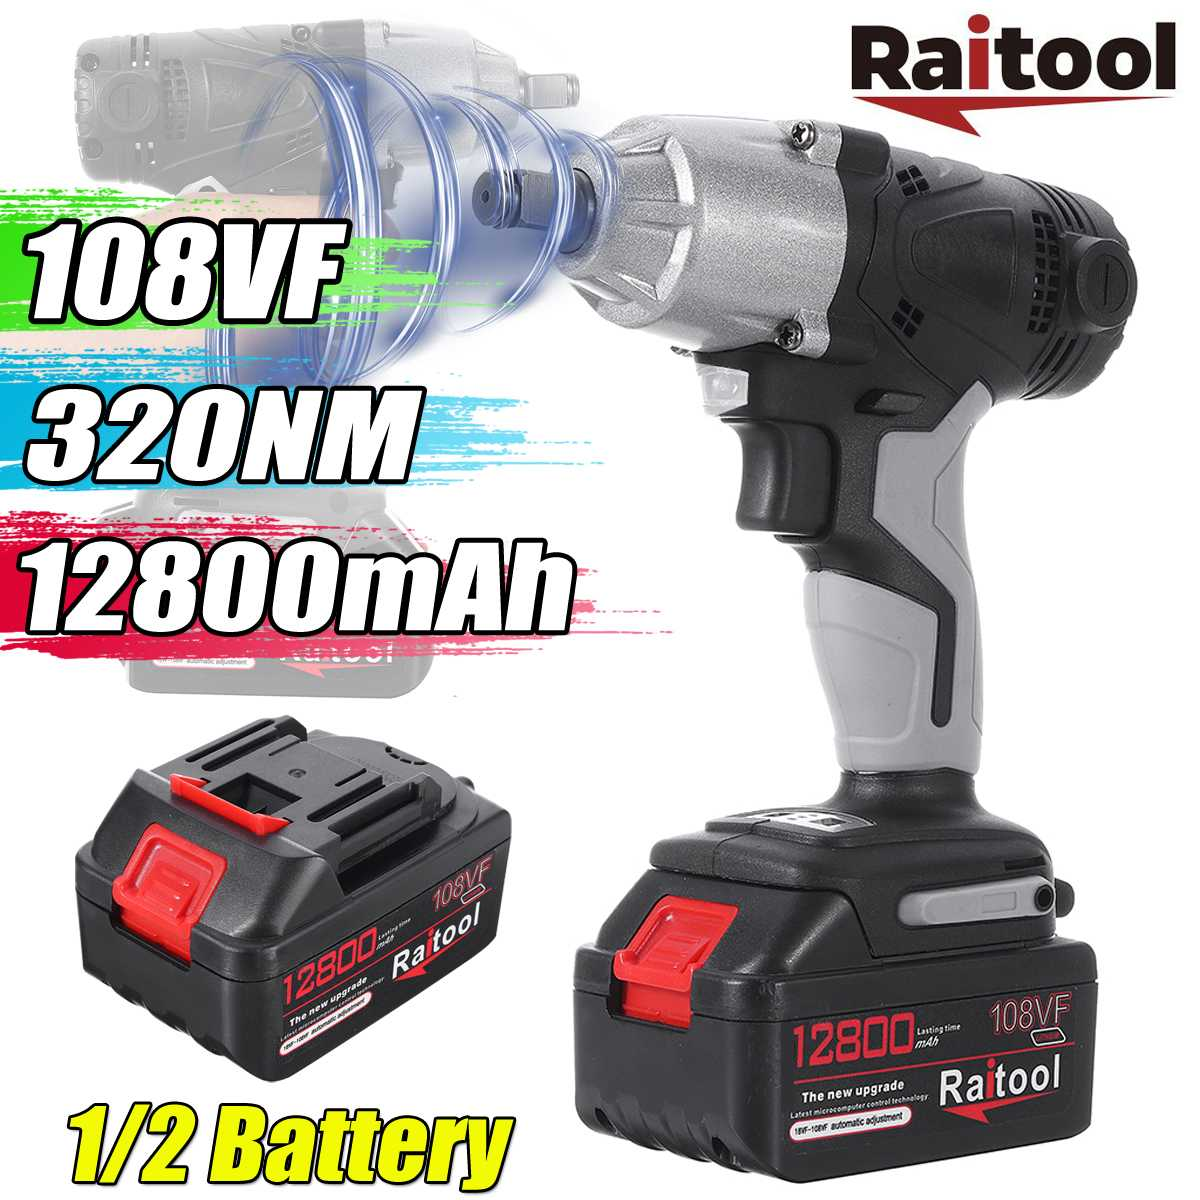 108VF 12800mAh Cordless Electric Impact Wrench Stepless Speed Lithium-Ion <font><b>Battery</b></font> <font><b>Drill</b></font> <font><b>Driver</b></font> Kit W/ 1 or 2 <font><b>Battery</b></font> Power Tool image